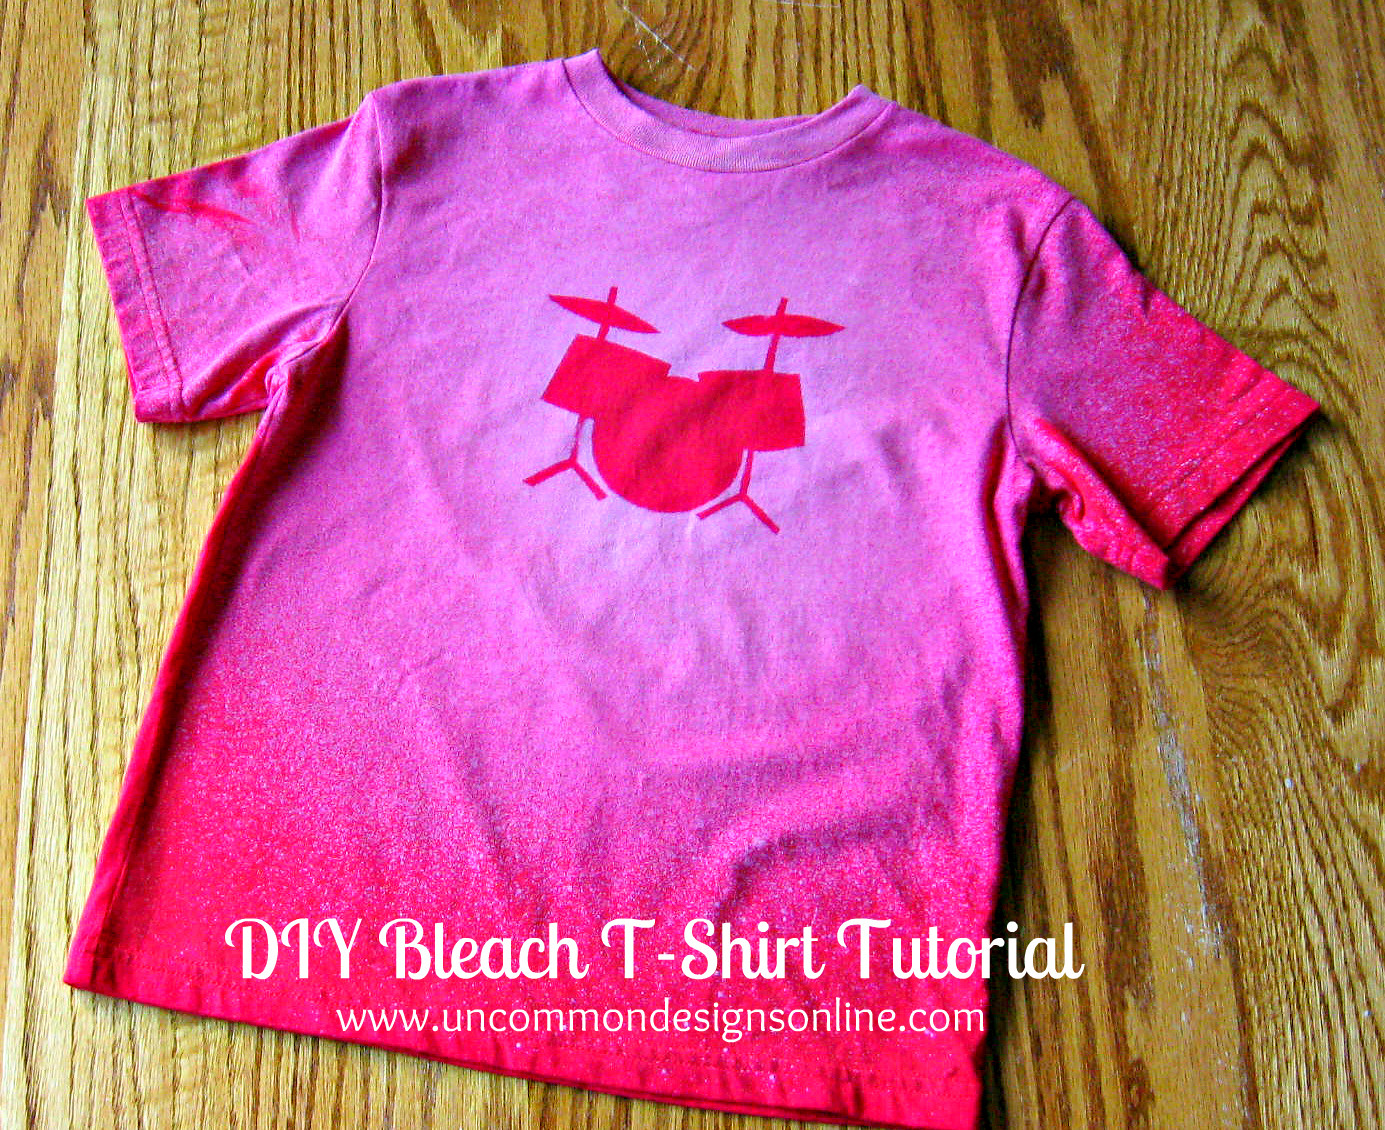 Best ideas about DIY Bleach Shirt . Save or Pin DIY Bleach T Shirt Now.